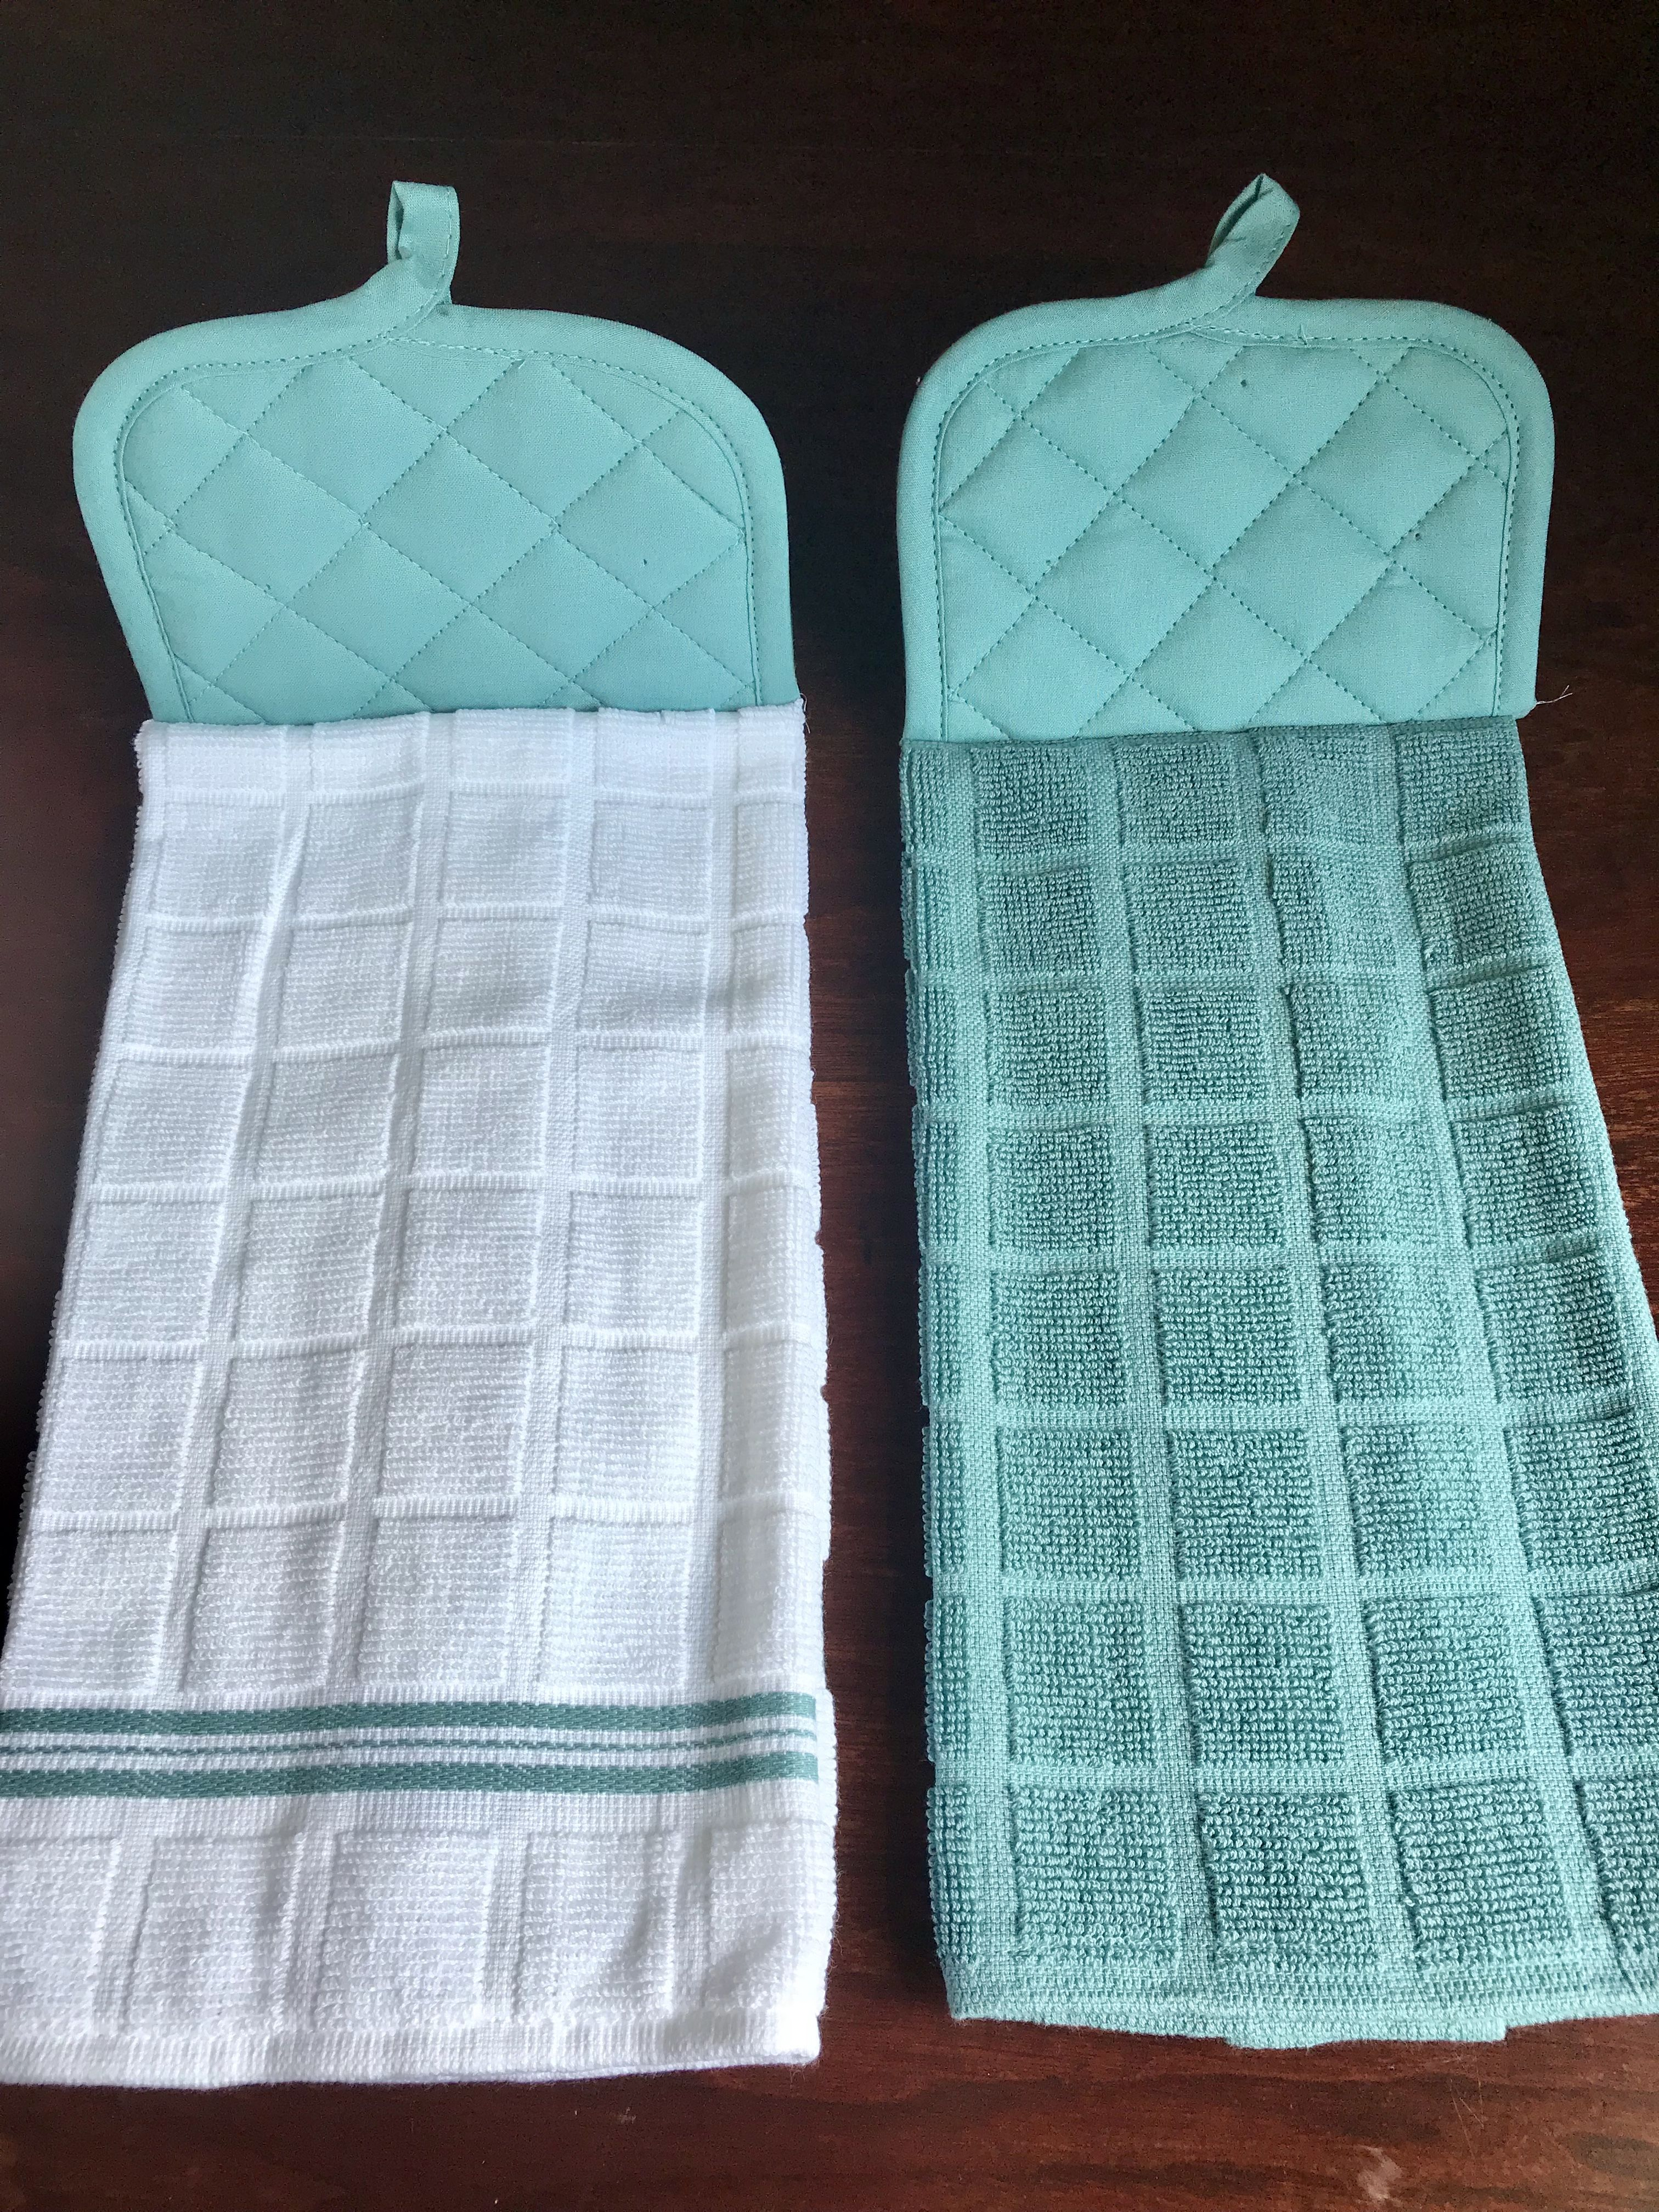 Hanging Kitchen Towel Easy Sewing Project   sewing projects ...